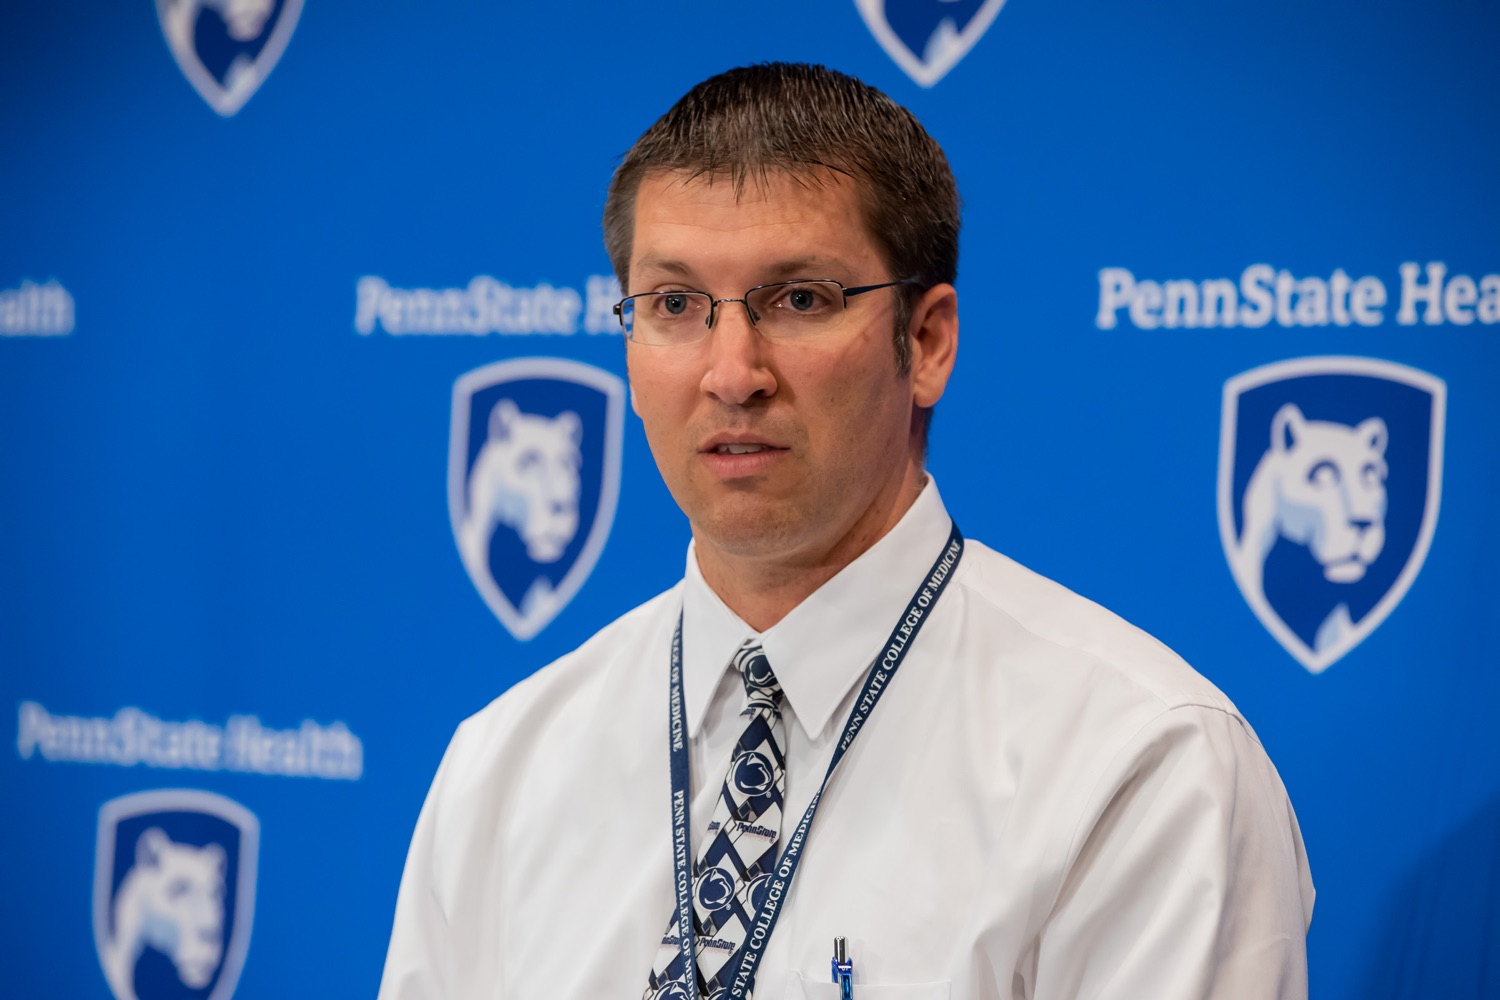 "<a href=""http://filesource.abacast.com/commonwealthofpa/photo/17471_DOH_FluSeason_AG_13.jpg"" target=""_blank"">⇣ Download Photo<br></a>Harrisburg, PA.  Dr. Todd Felix, family medicine physician at Penn State Health, speaks at today's event at the Penn State Health Milton S. Hershey Medical Center. The Department of Health reminded residents that it is time to get their flu vaccine, as flu season officially starts this month and runs until May. Residents are also encouraged to get their flu vaccine before the end of October.  October 8, 2019."